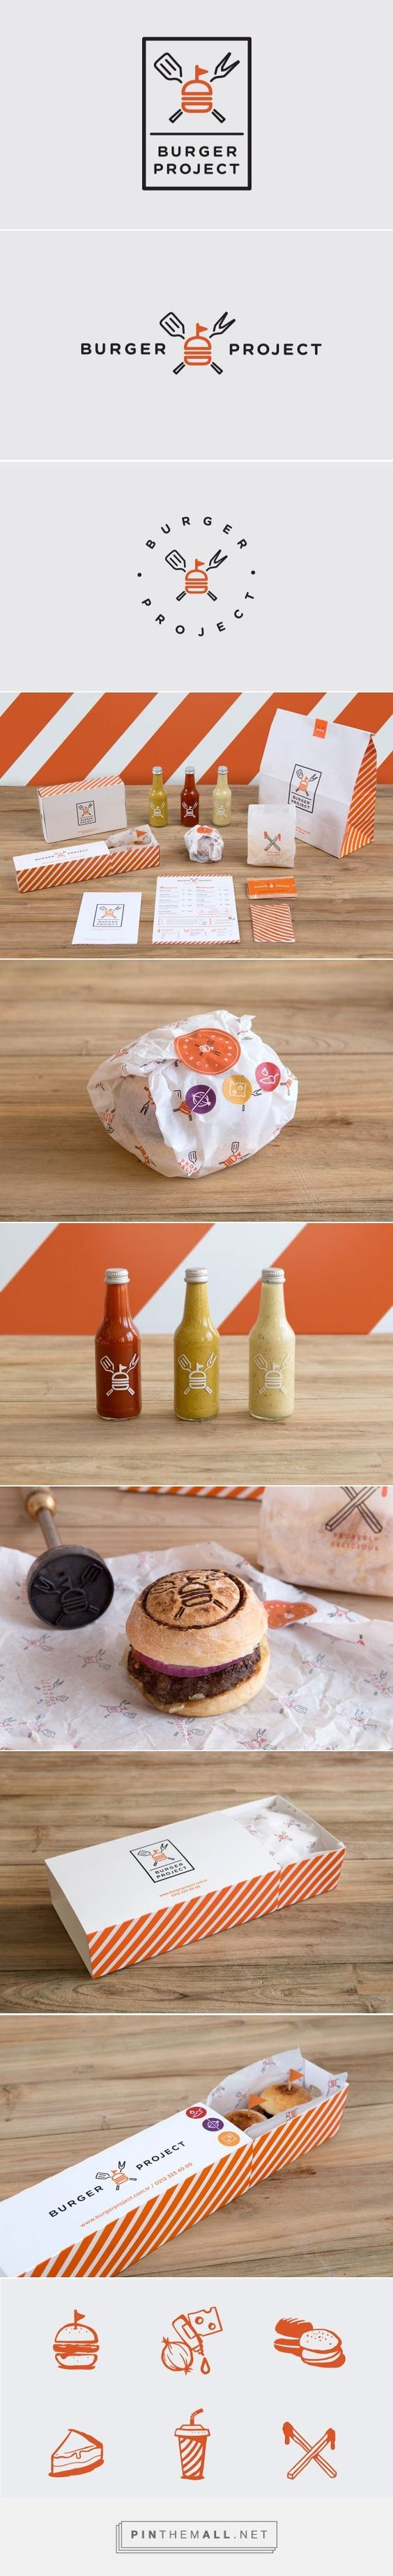 Burger Project on Behance identity packaging branding curated by Packaging Diva PD. Brand name 'Burger Project' reflects their mission and excitement to offer the best hamburgers possible